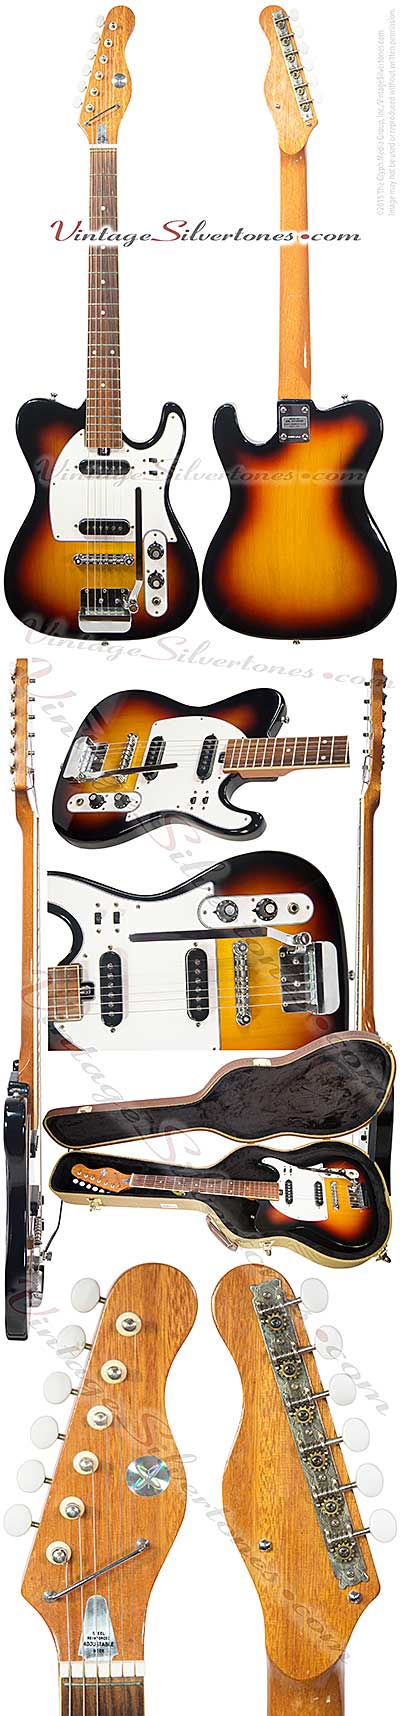 Sears 1413 made in Japan, 1972 red sunburst, 2 pickups, single cutaway, tele-style